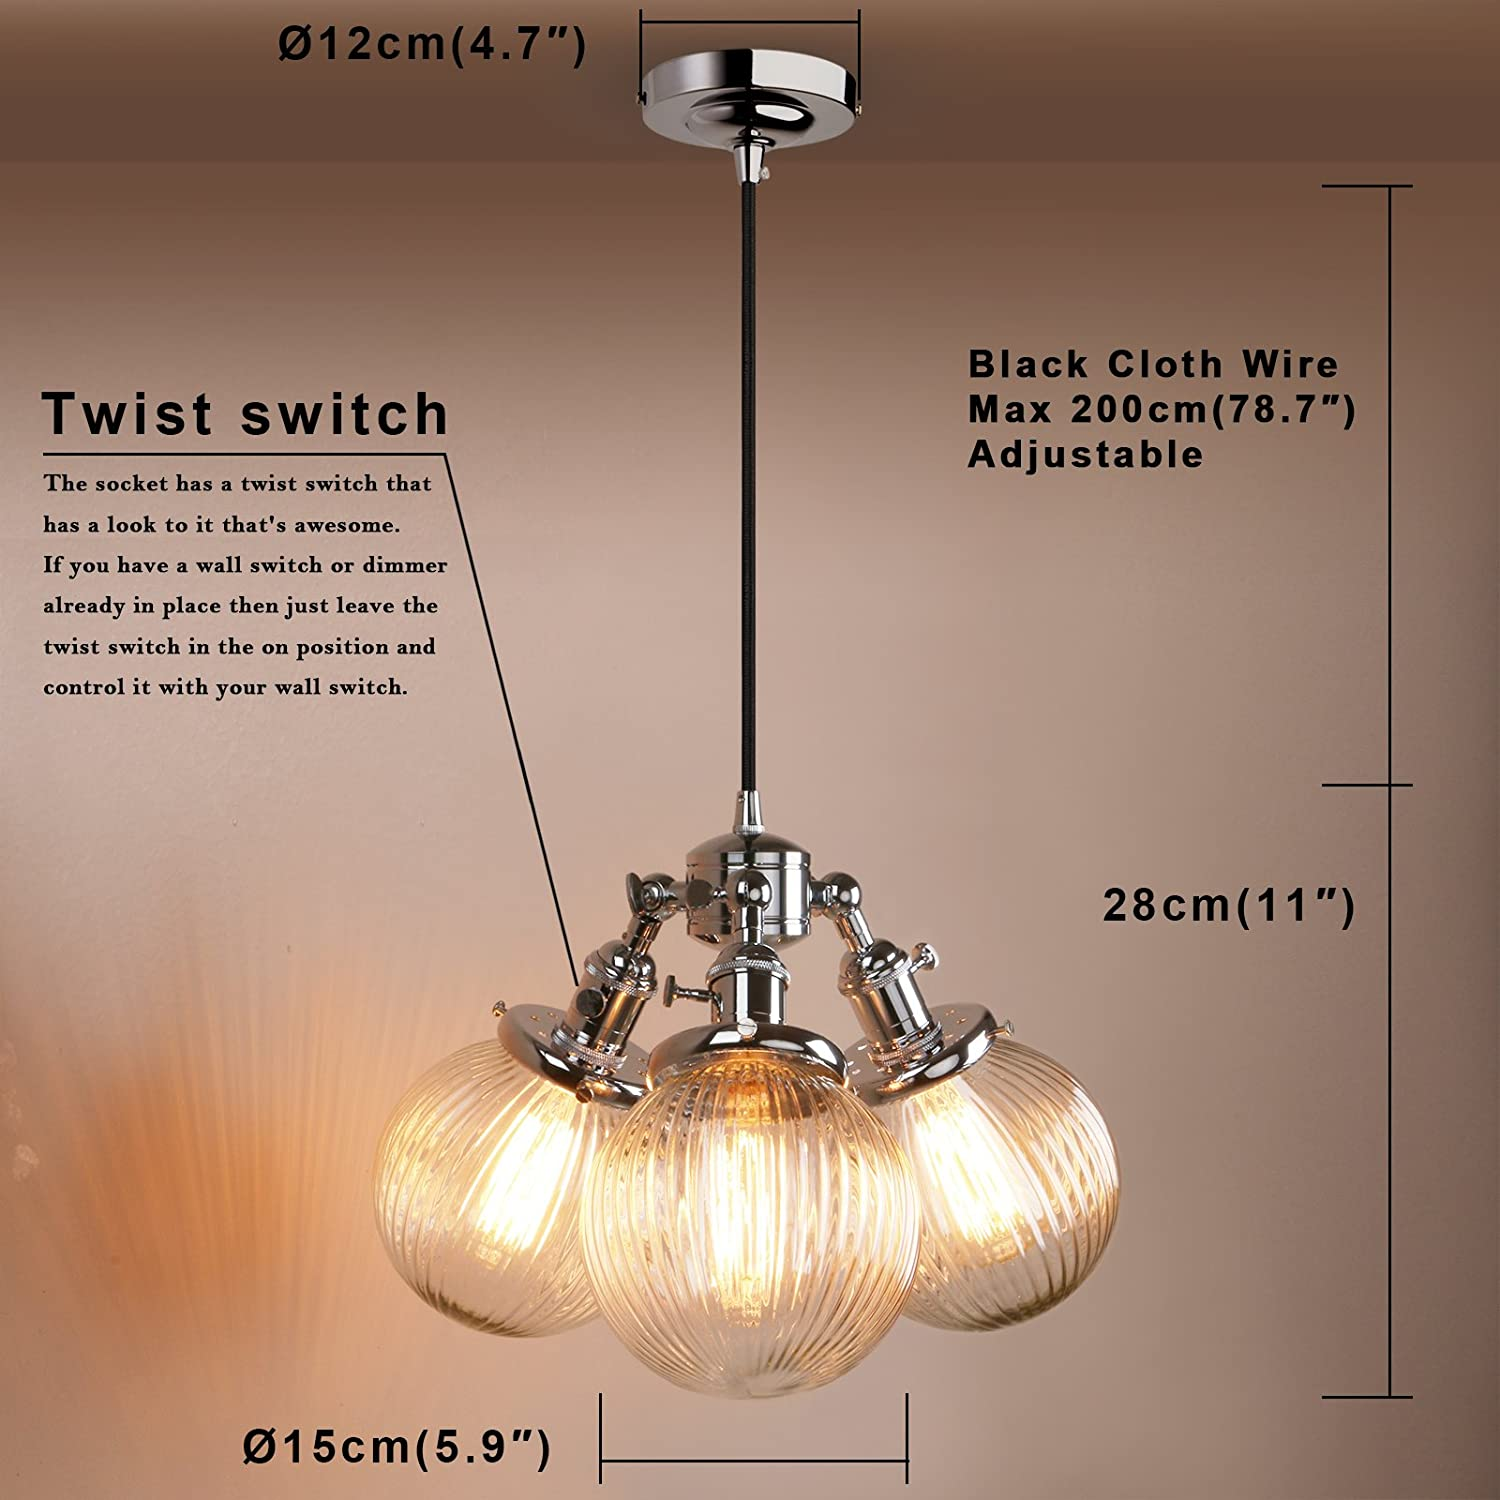 Pathson Industrial Modern Vintage Loft Bar 3 Lights Pendant Ceiling Wire That Is In The From Switch Now To Rose Multi Island Dining Room Bedroom Hanging Chrome Light Fittings Chandelier